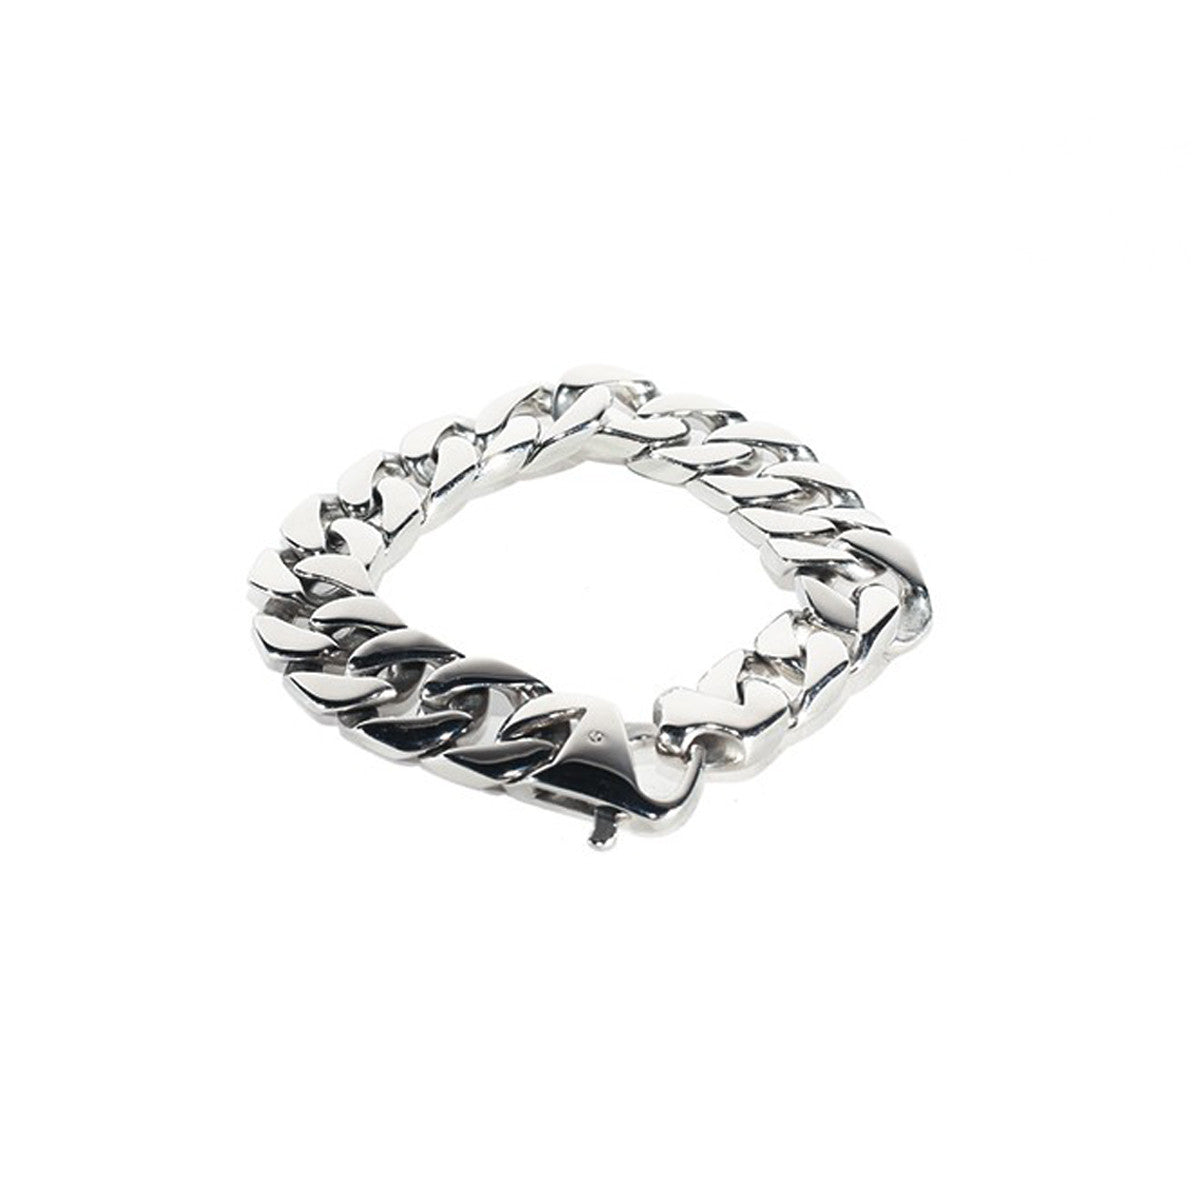 Cuban Link Heavy Duty Stainless Steel Bracelet